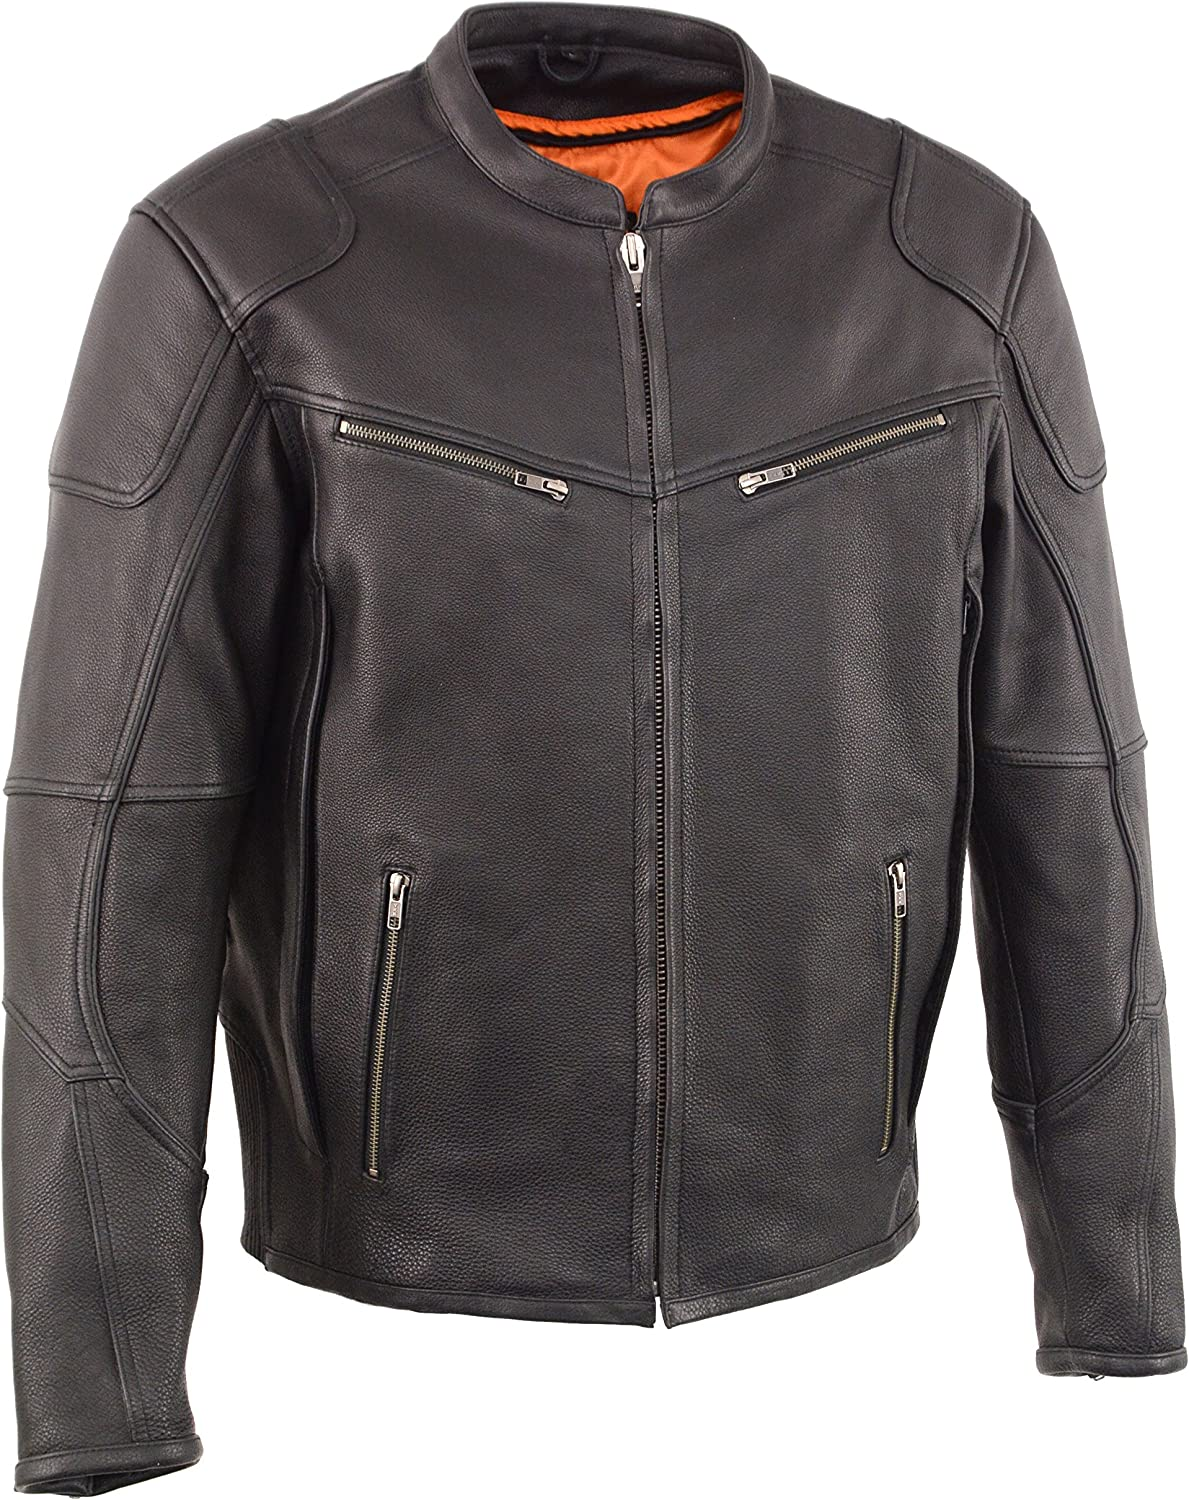 Milwaukee Leather MLM1502 Men's 'Cool-Tec' Black Vented Leather Scooter Jacket with Gun Pockets - Medium